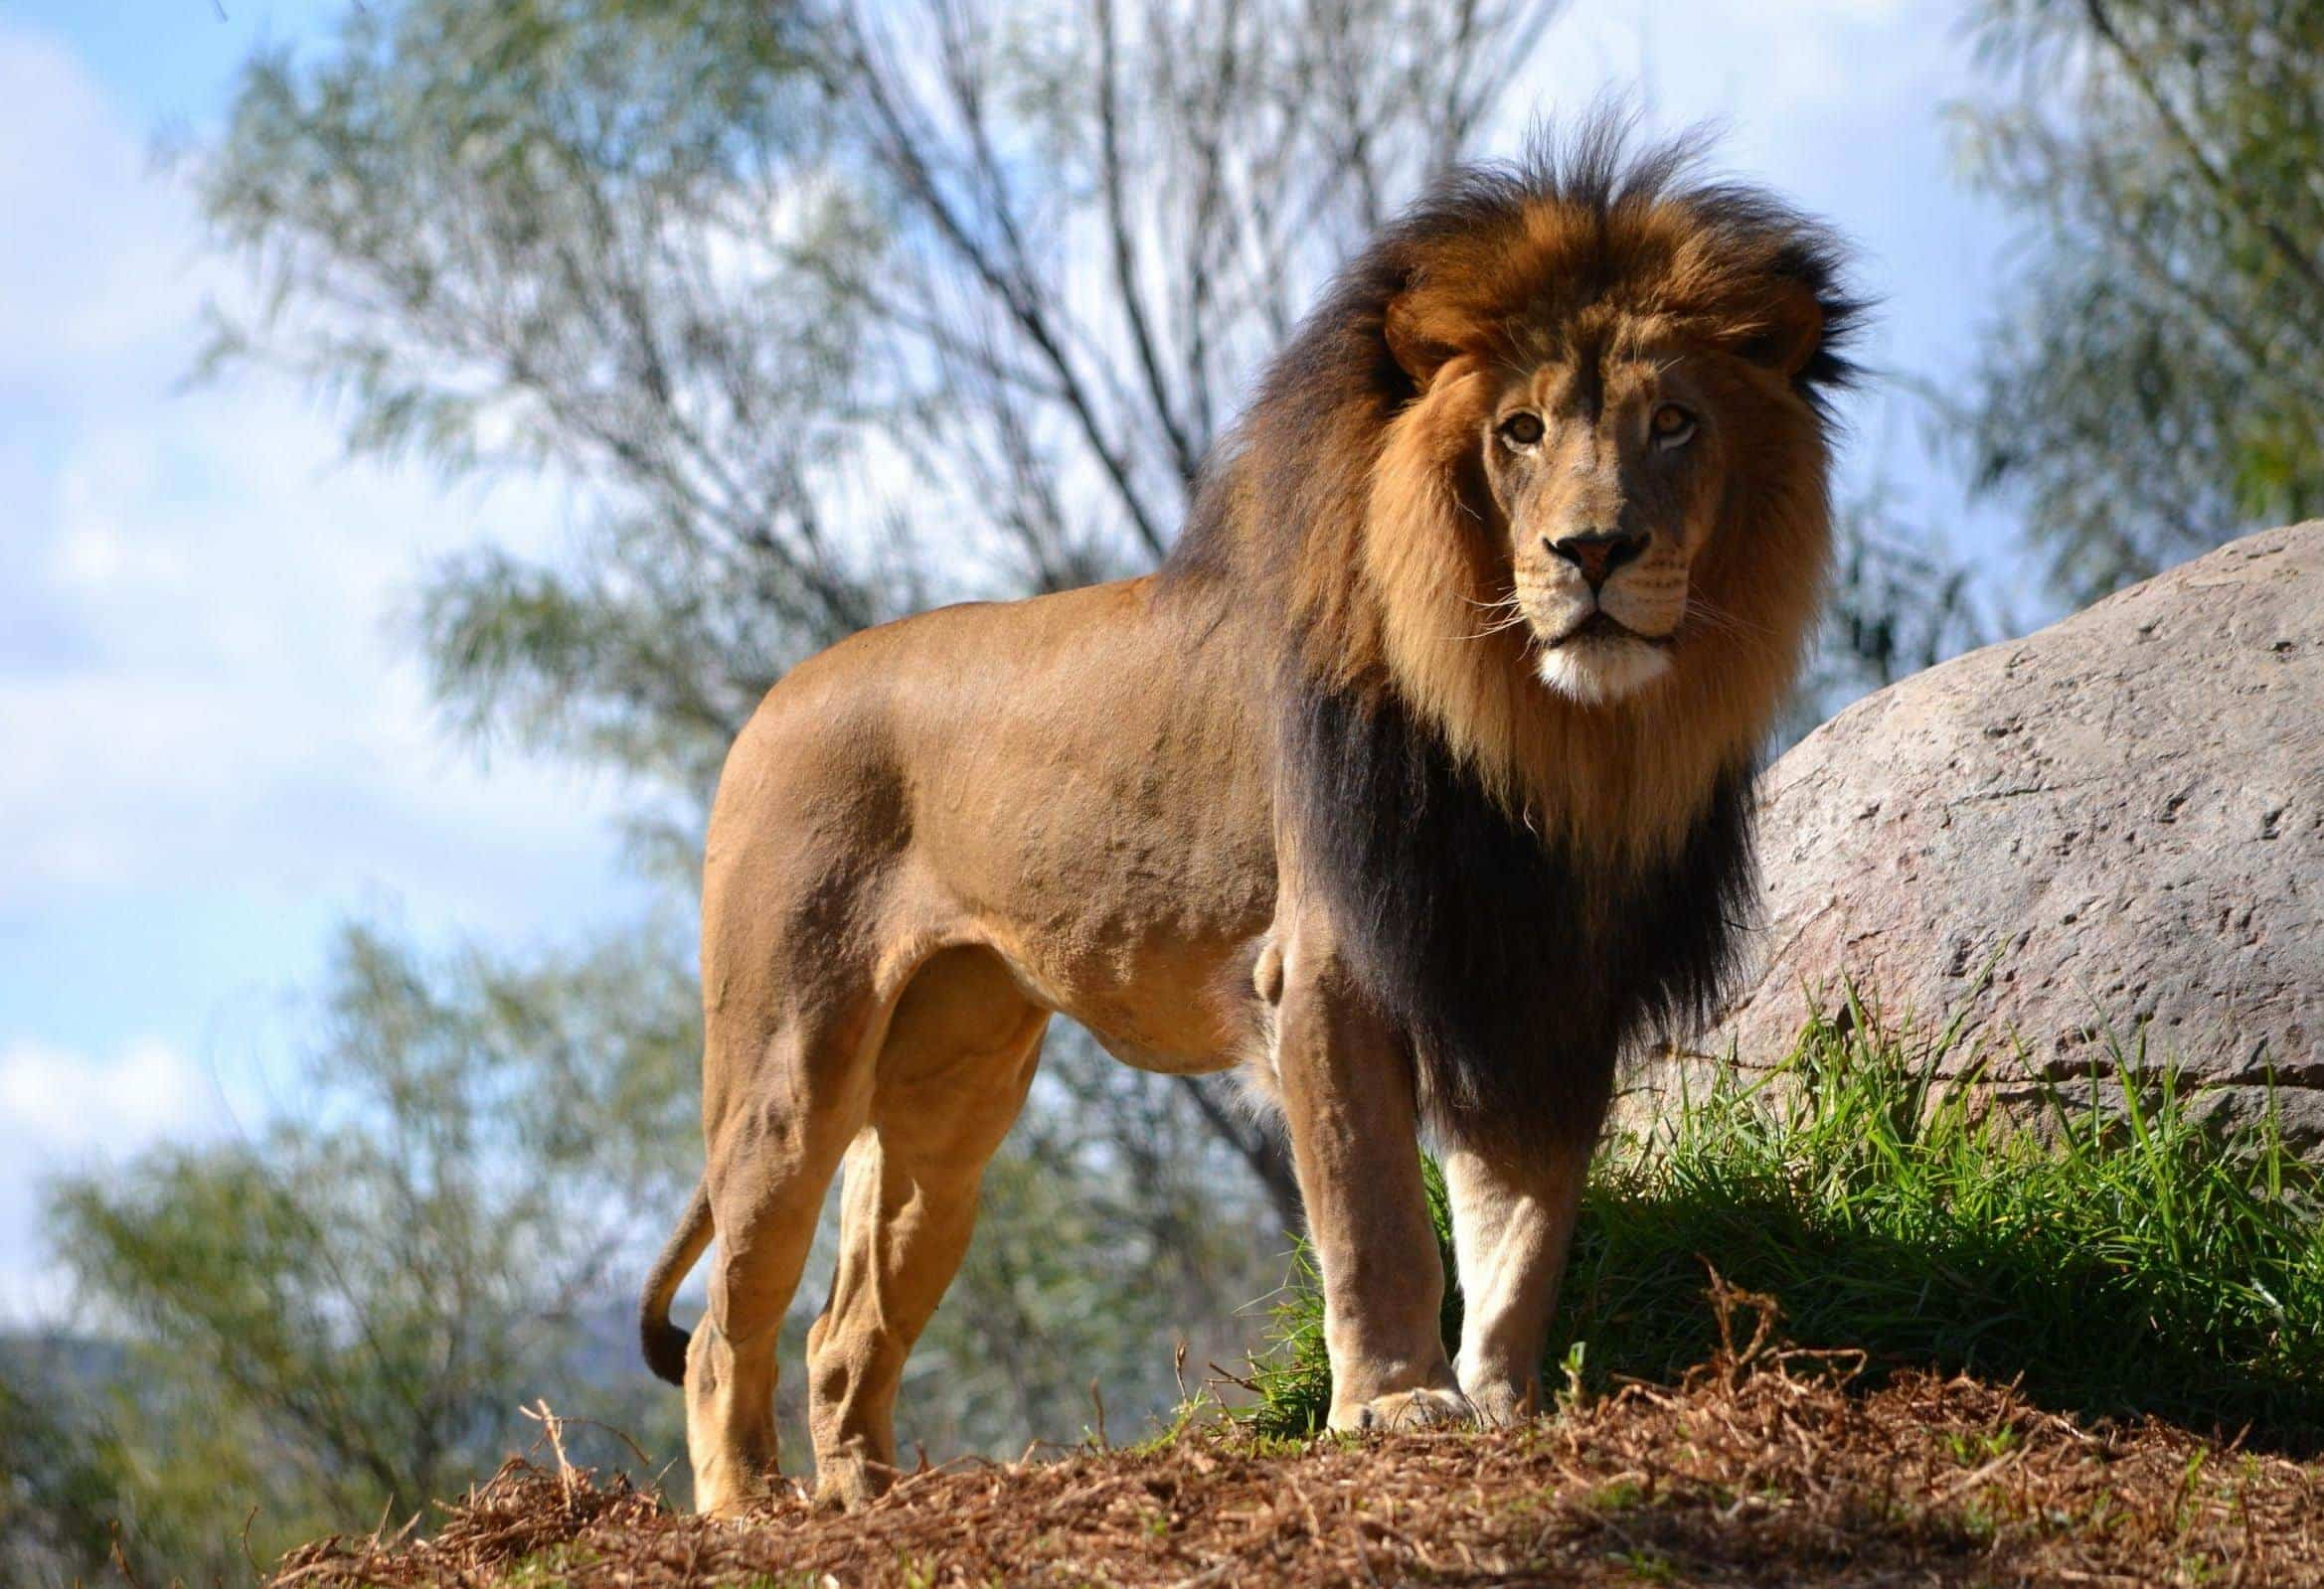 lion dream meaning, dream about lion, lion dream interpretation, seeing in a dream lion